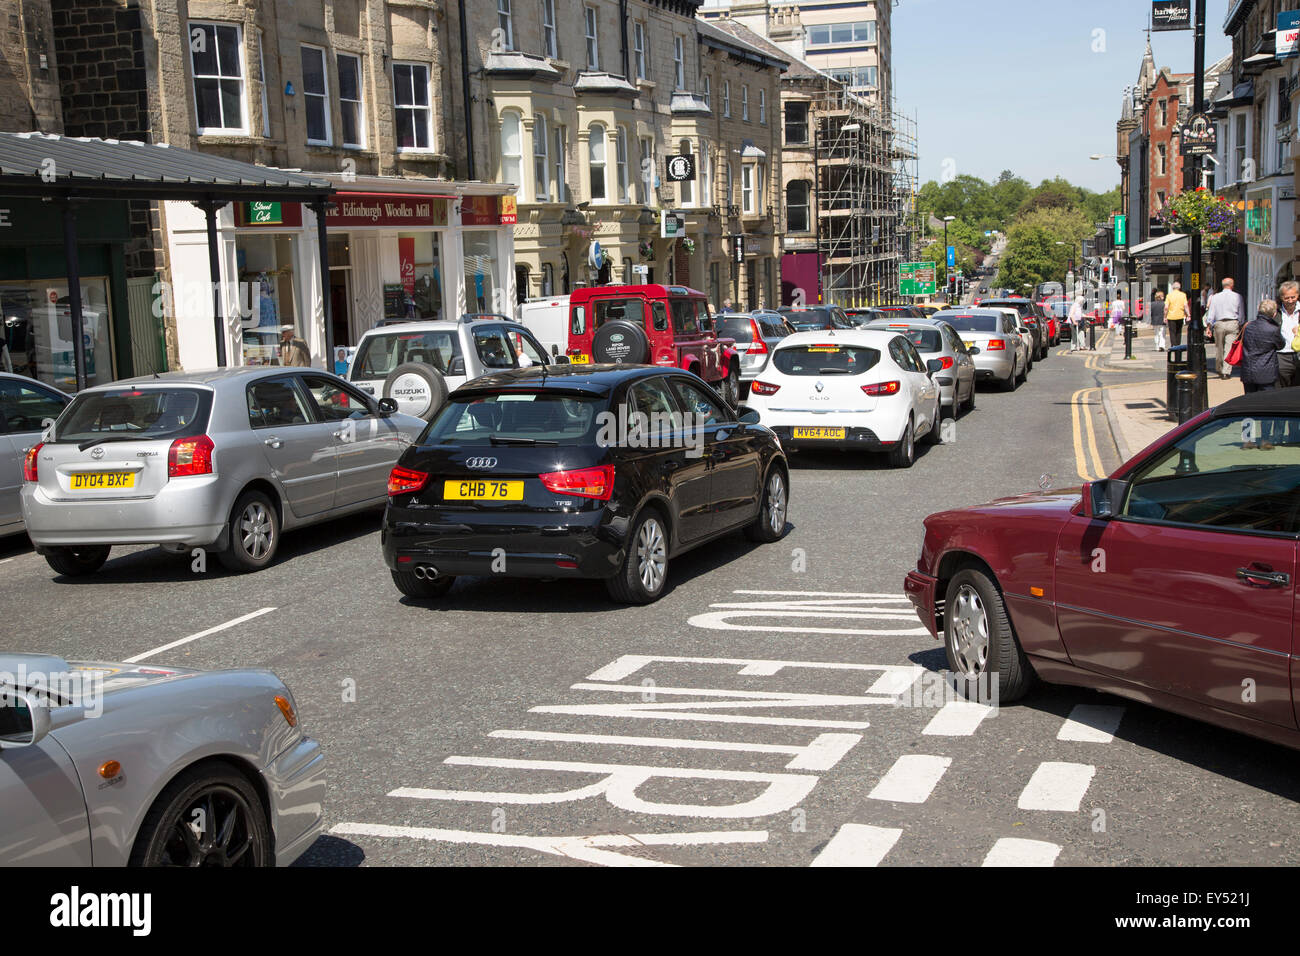 Traffic congestion in town centre of Harrogate, Yorkshire, England, UK - Stock Image